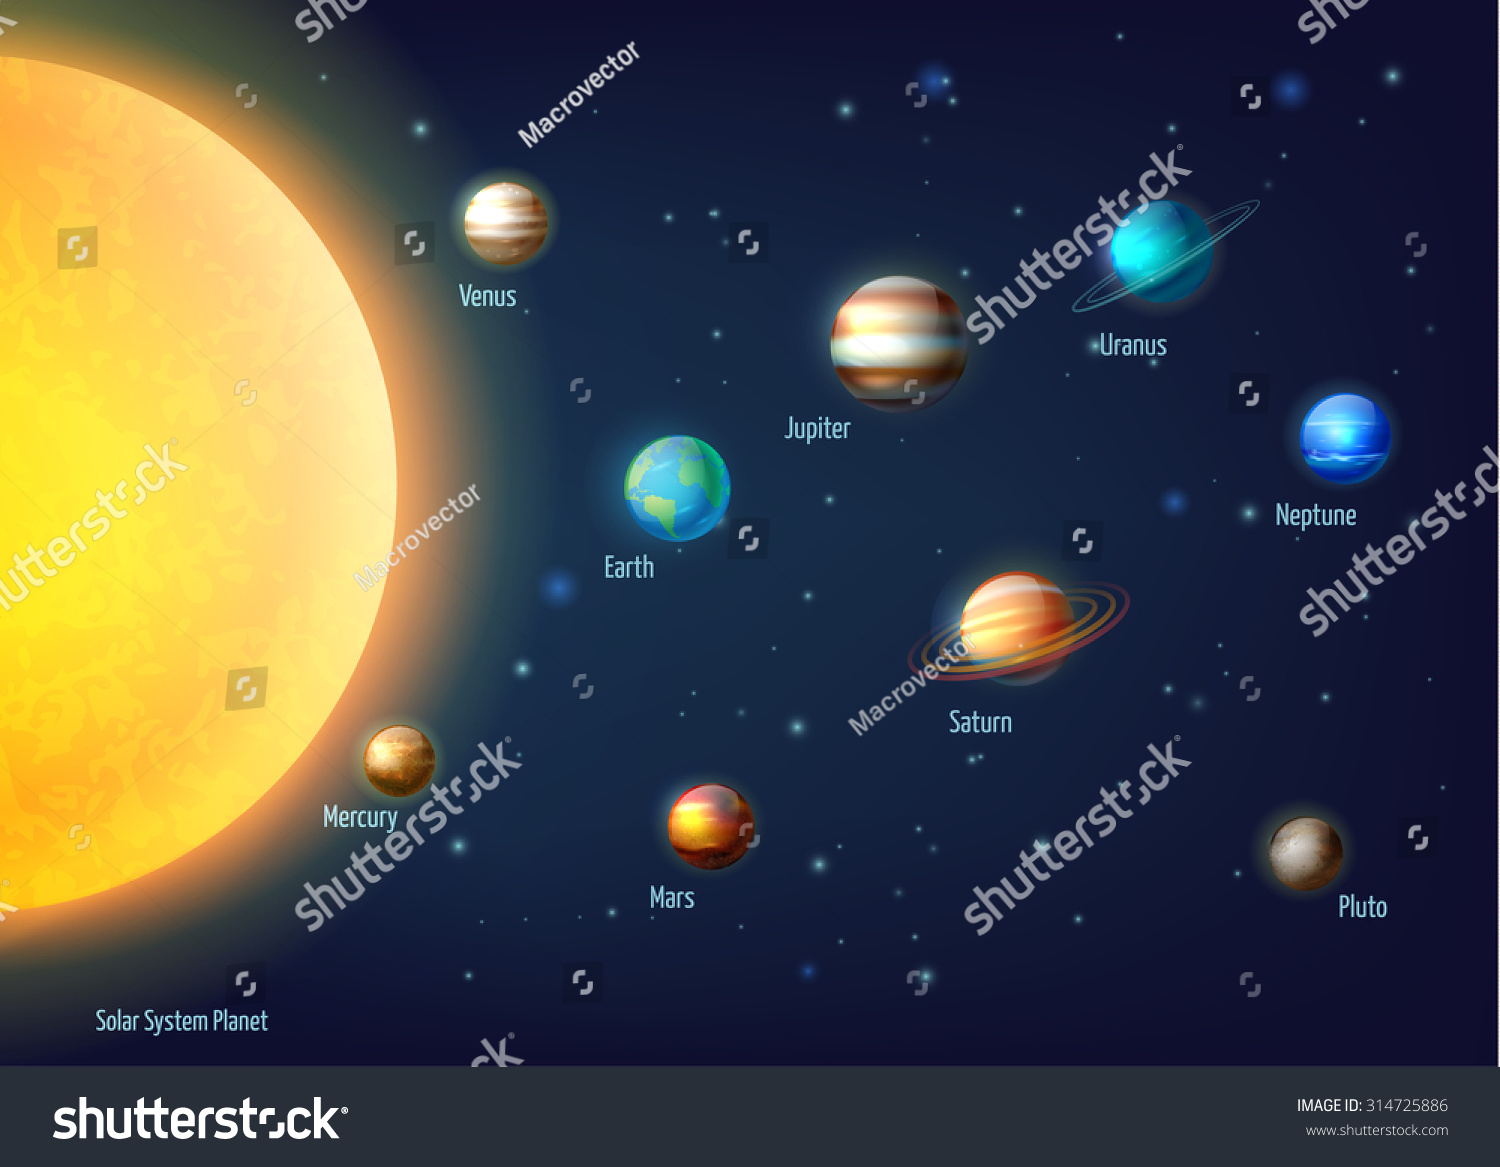 outer space planets solar system - photo #19